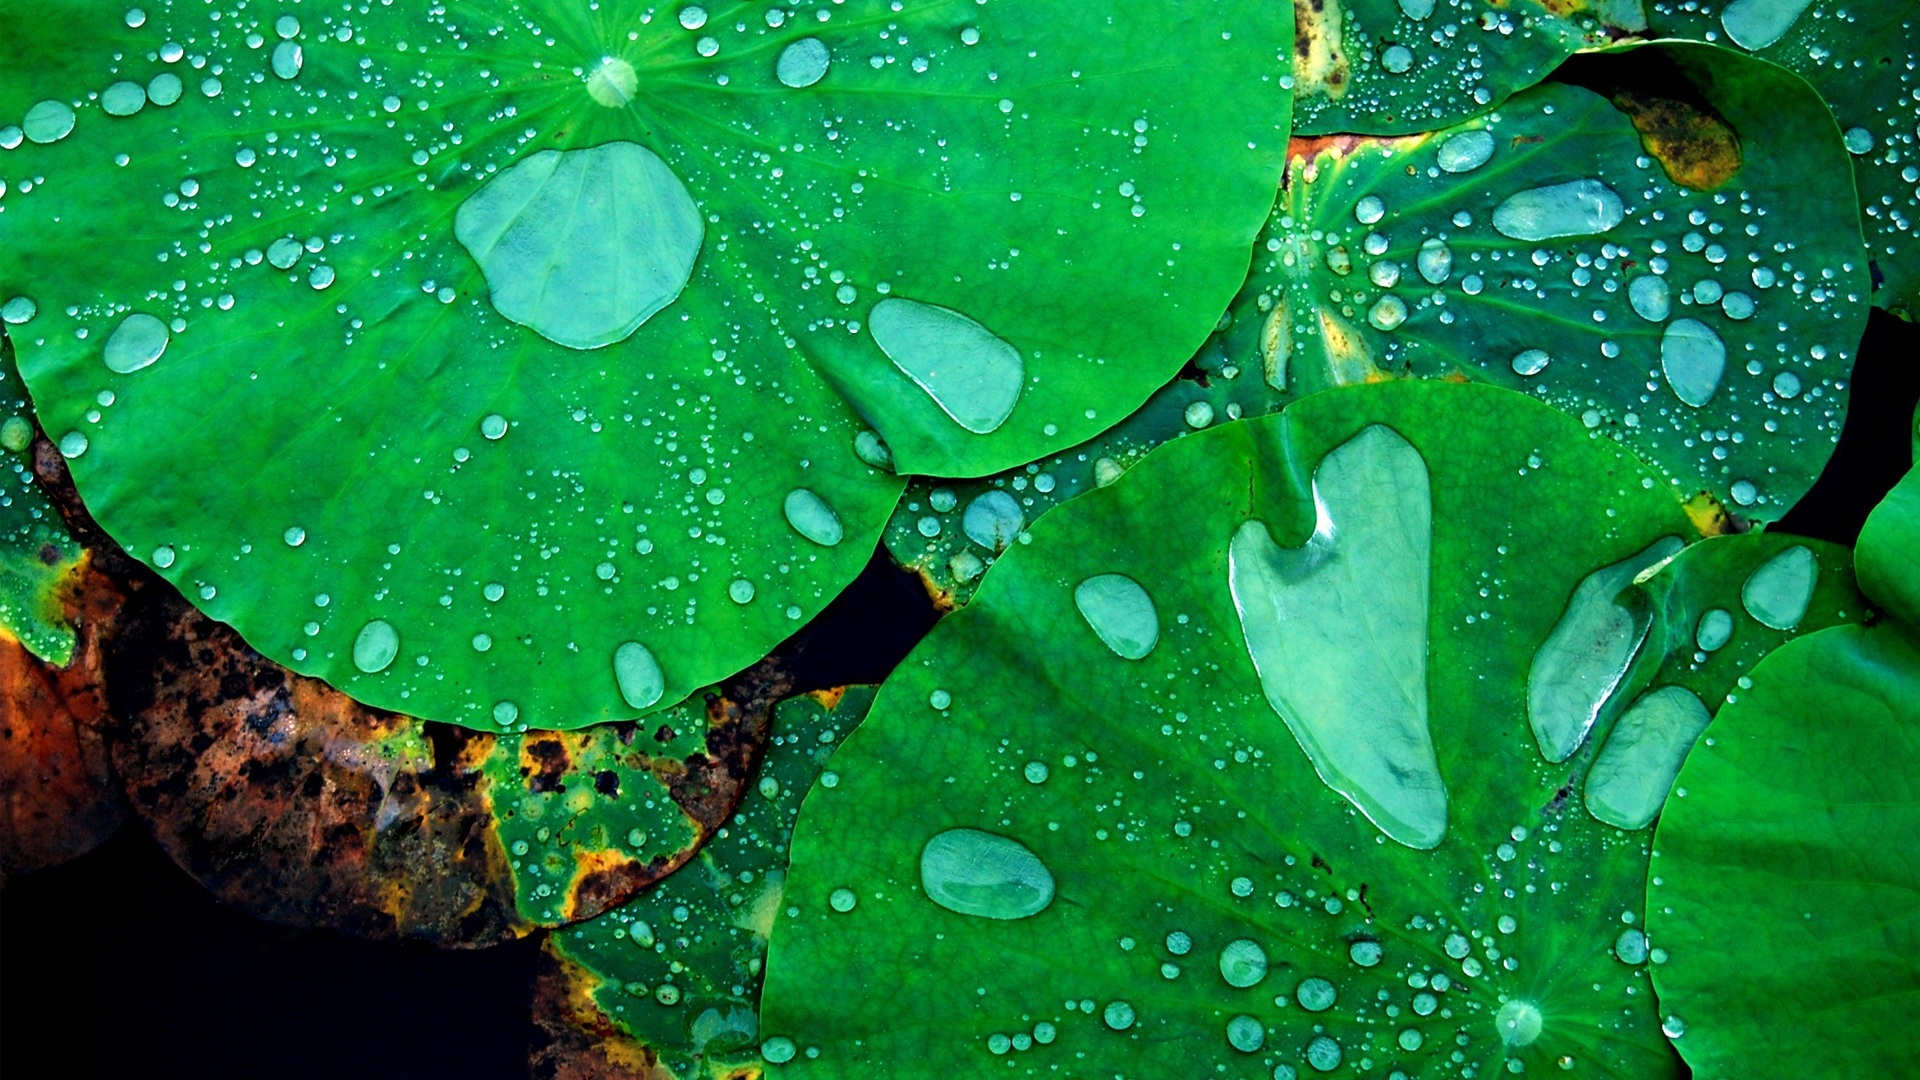 rain drops nature refreshing